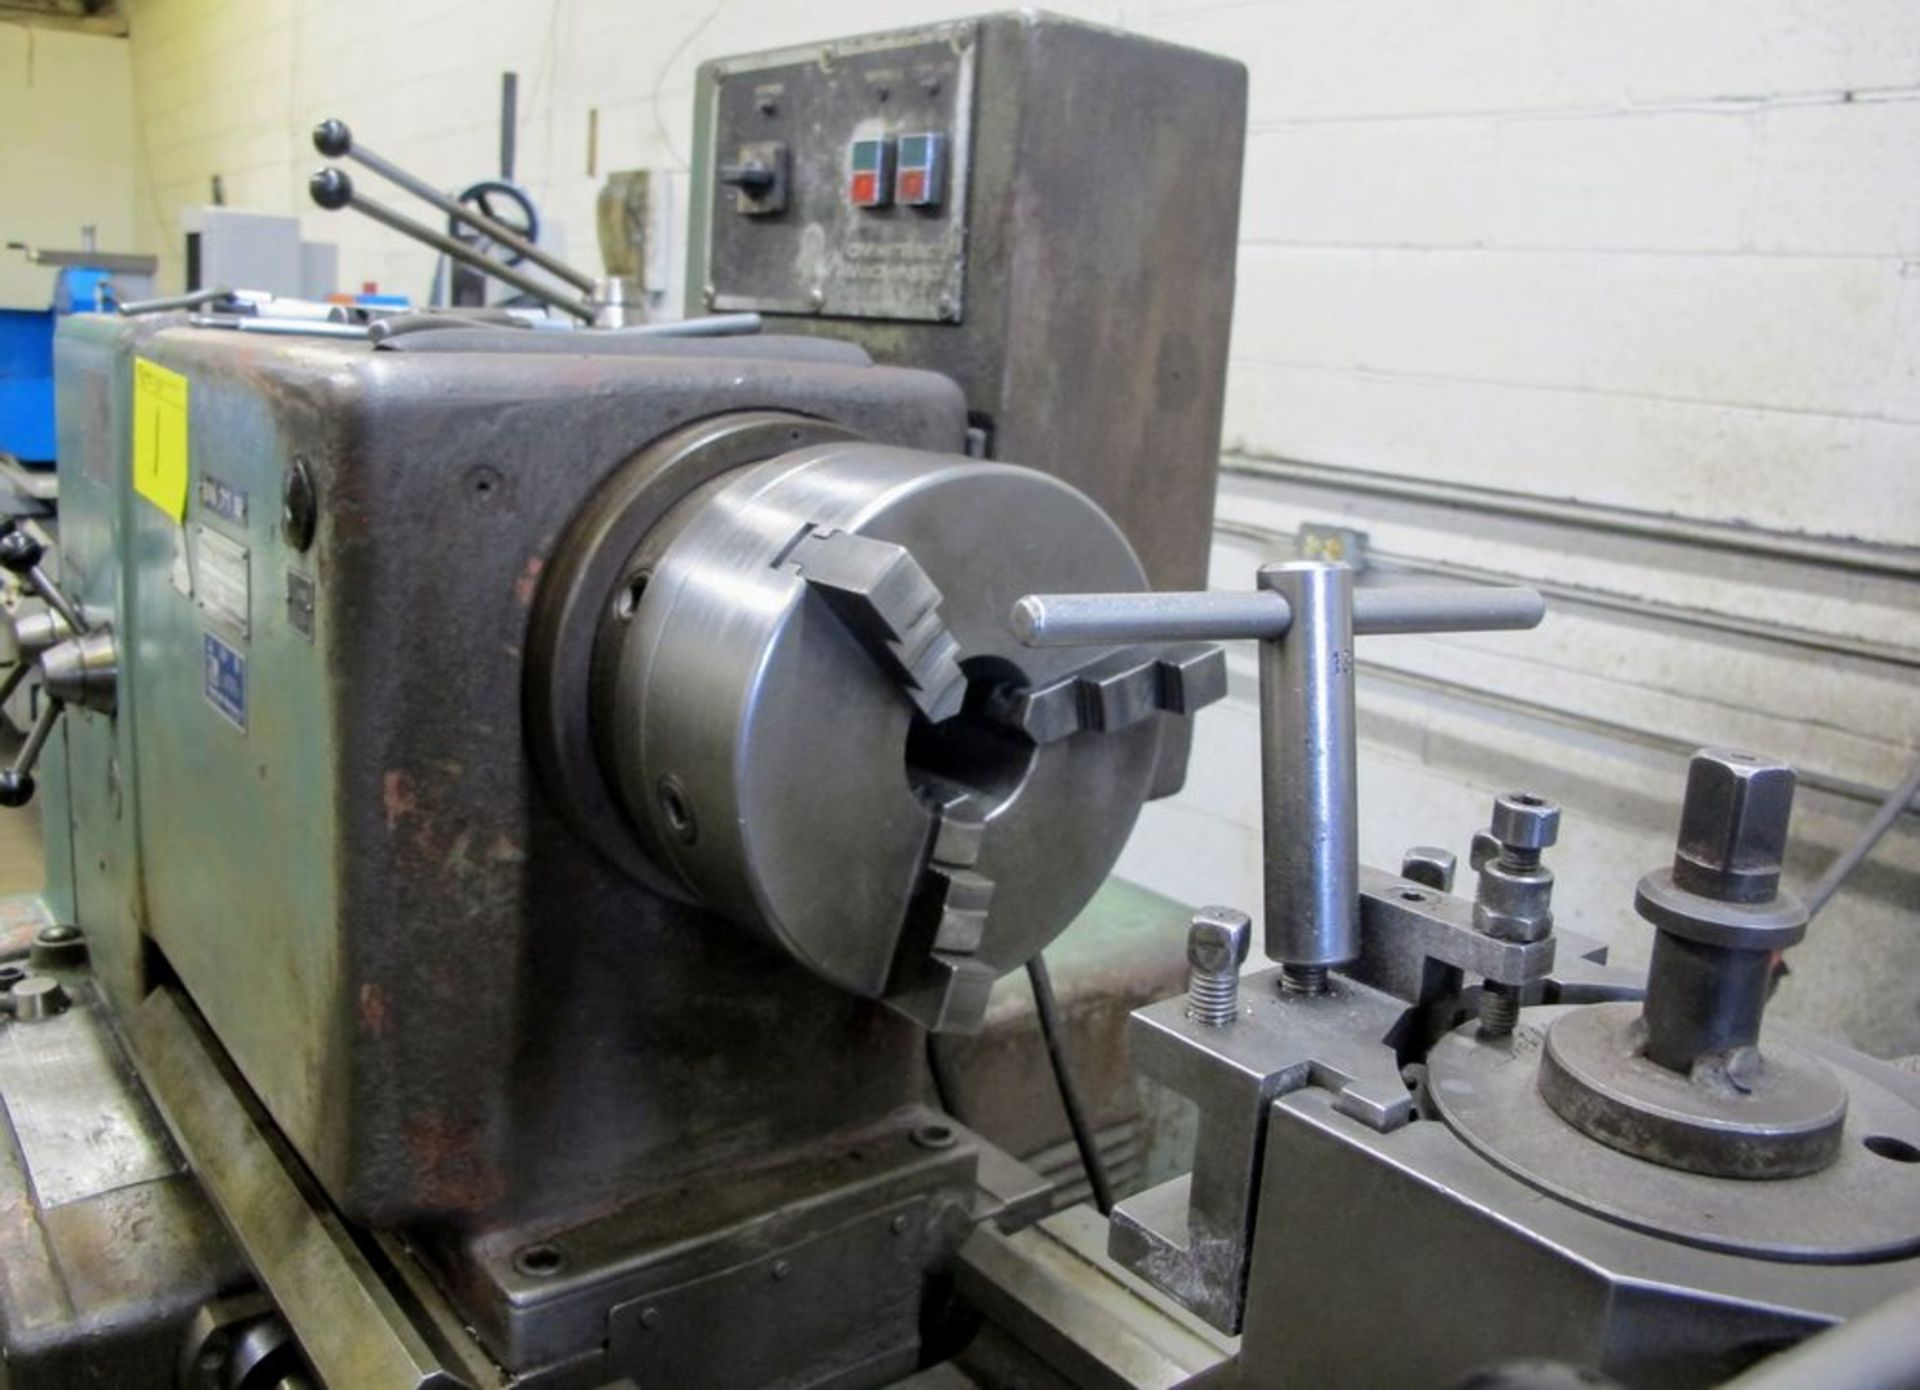 """TOS TRENCIN SN71B LATHE, 28"""" SWING, 7' BED, 3 JAW CHUCK, TAIL STOCK, STEADY REST, QUICK CHANGE - Image 8 of 10"""